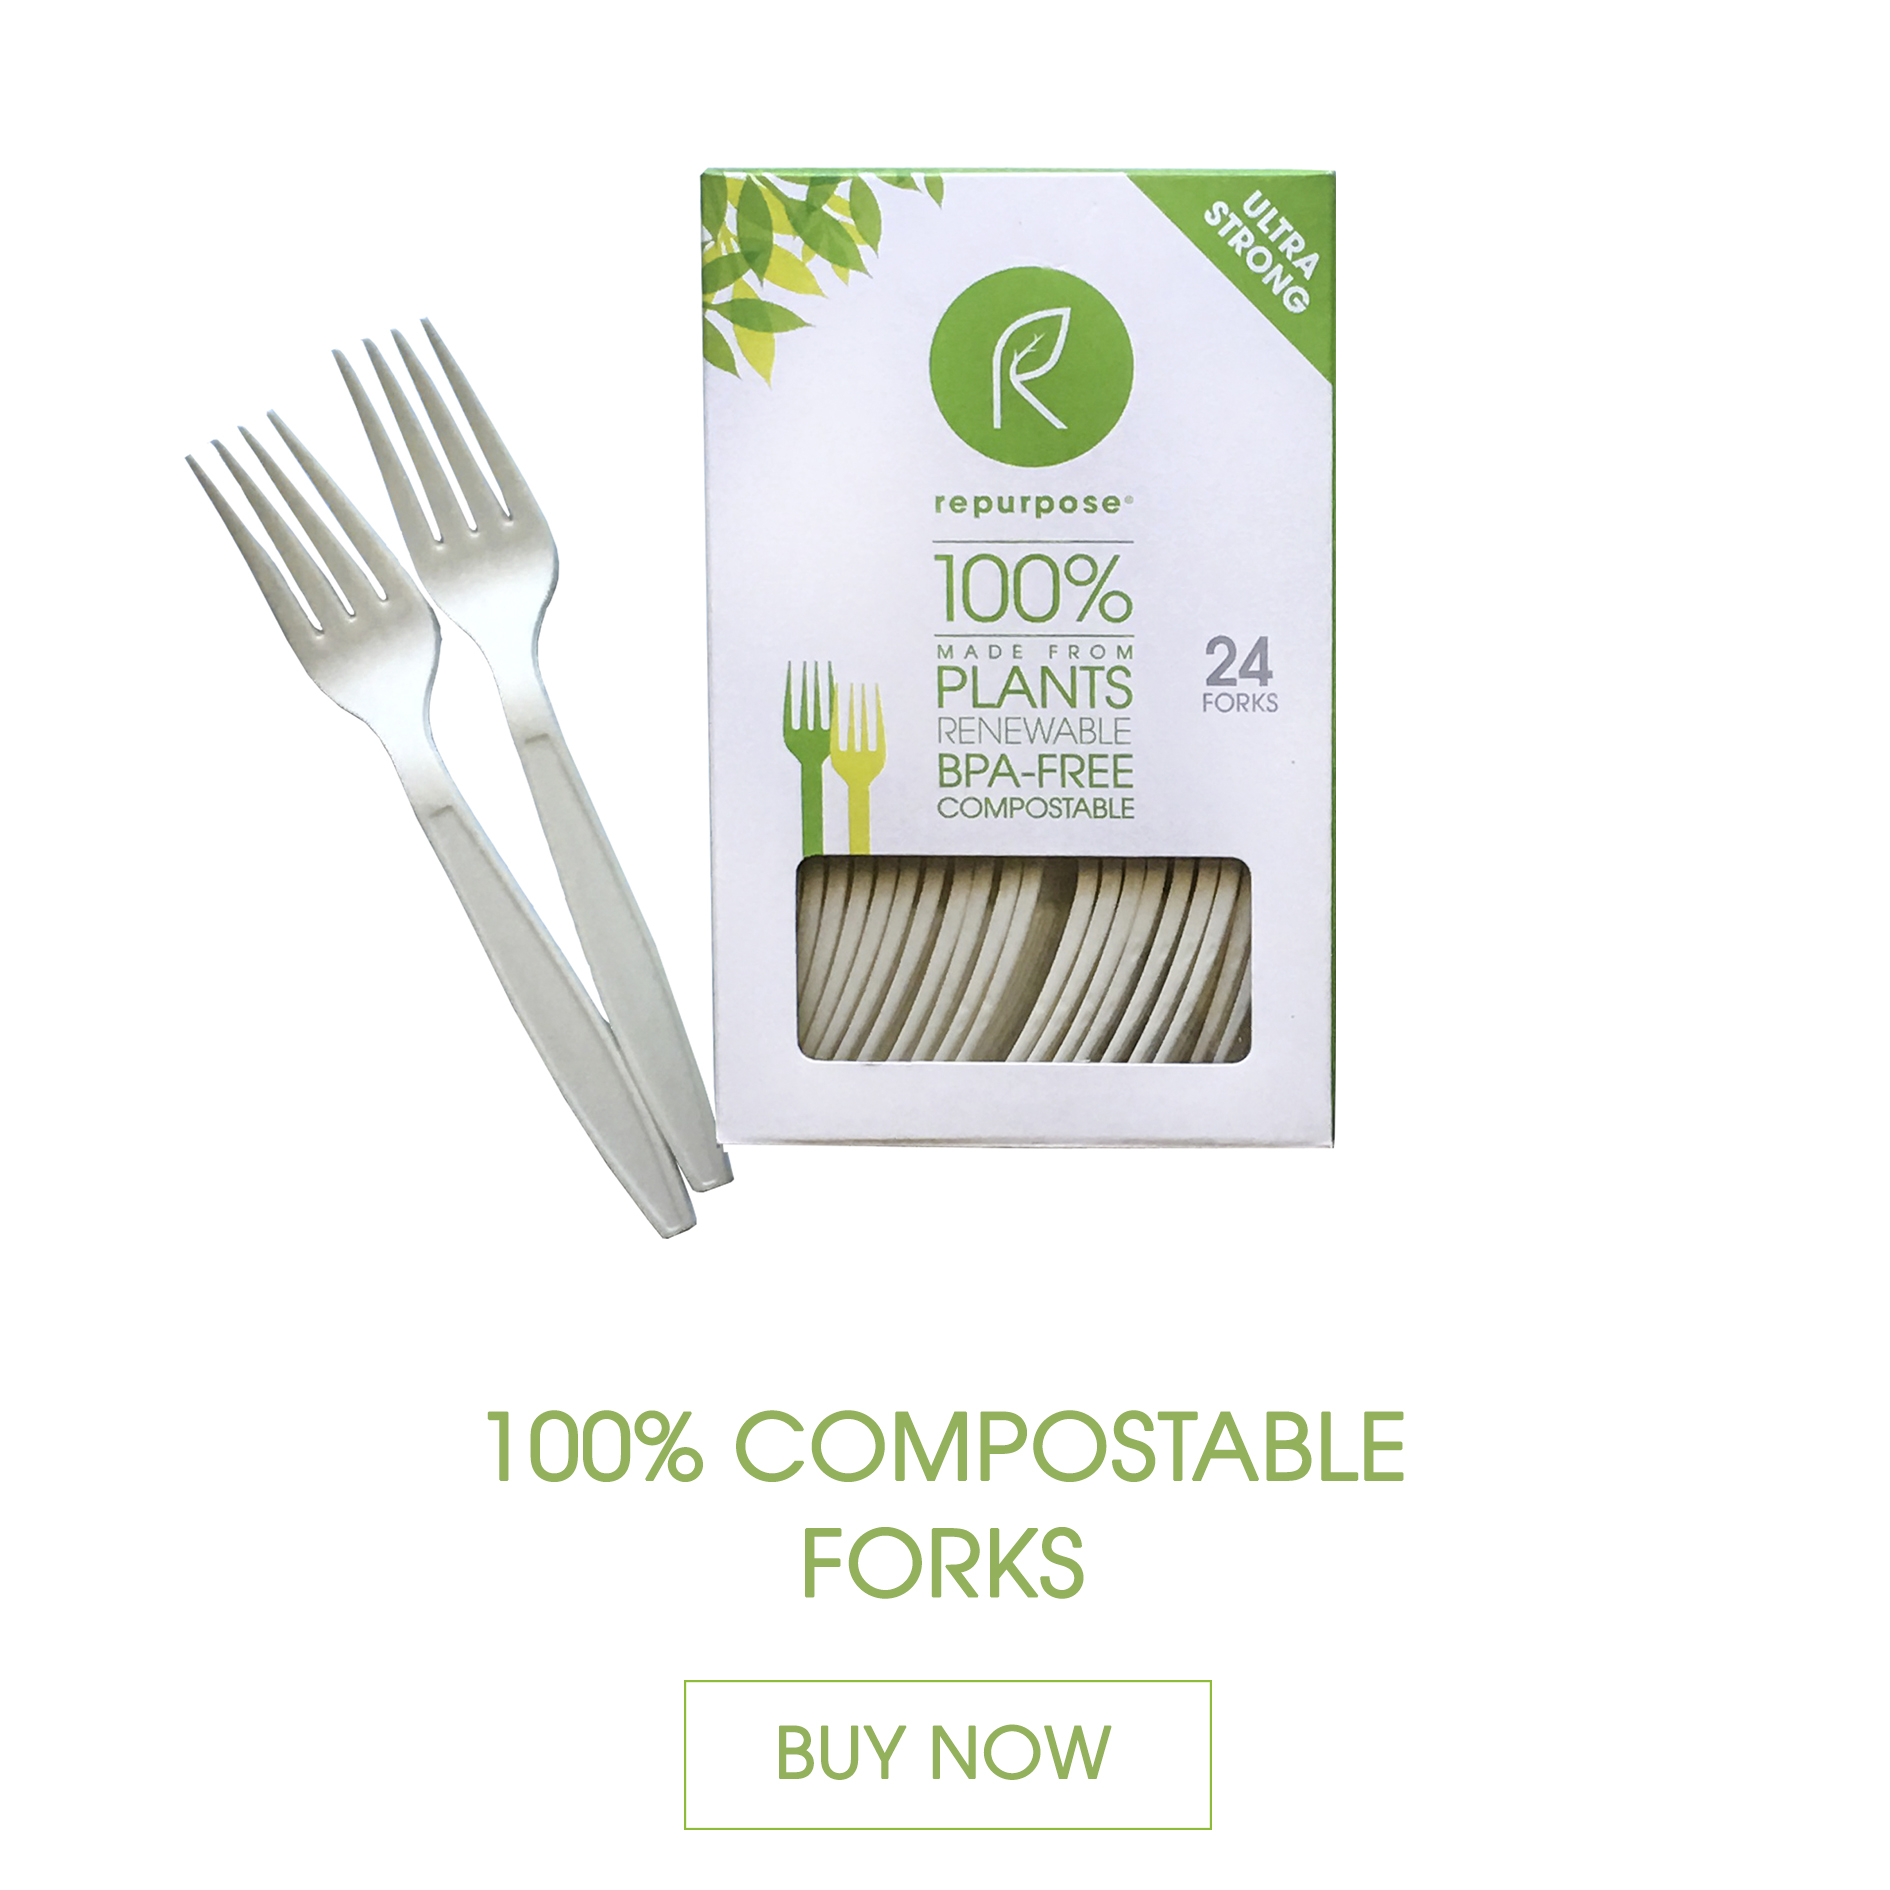 Repurpose Forks are made 100% from plants, renewable and compostable. They are high heat resistant, heavy duty and durable